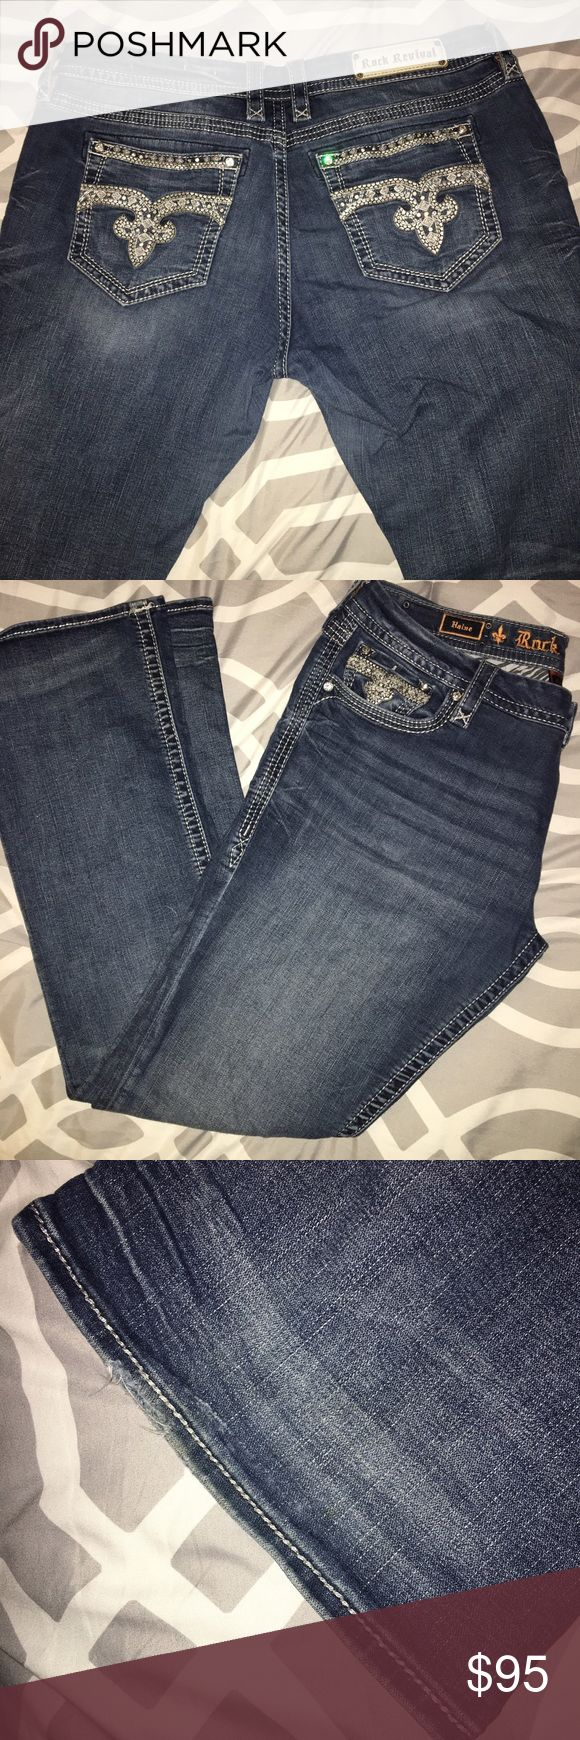 best 20+ cheap rock revival jeans ideas on pinterest | rock